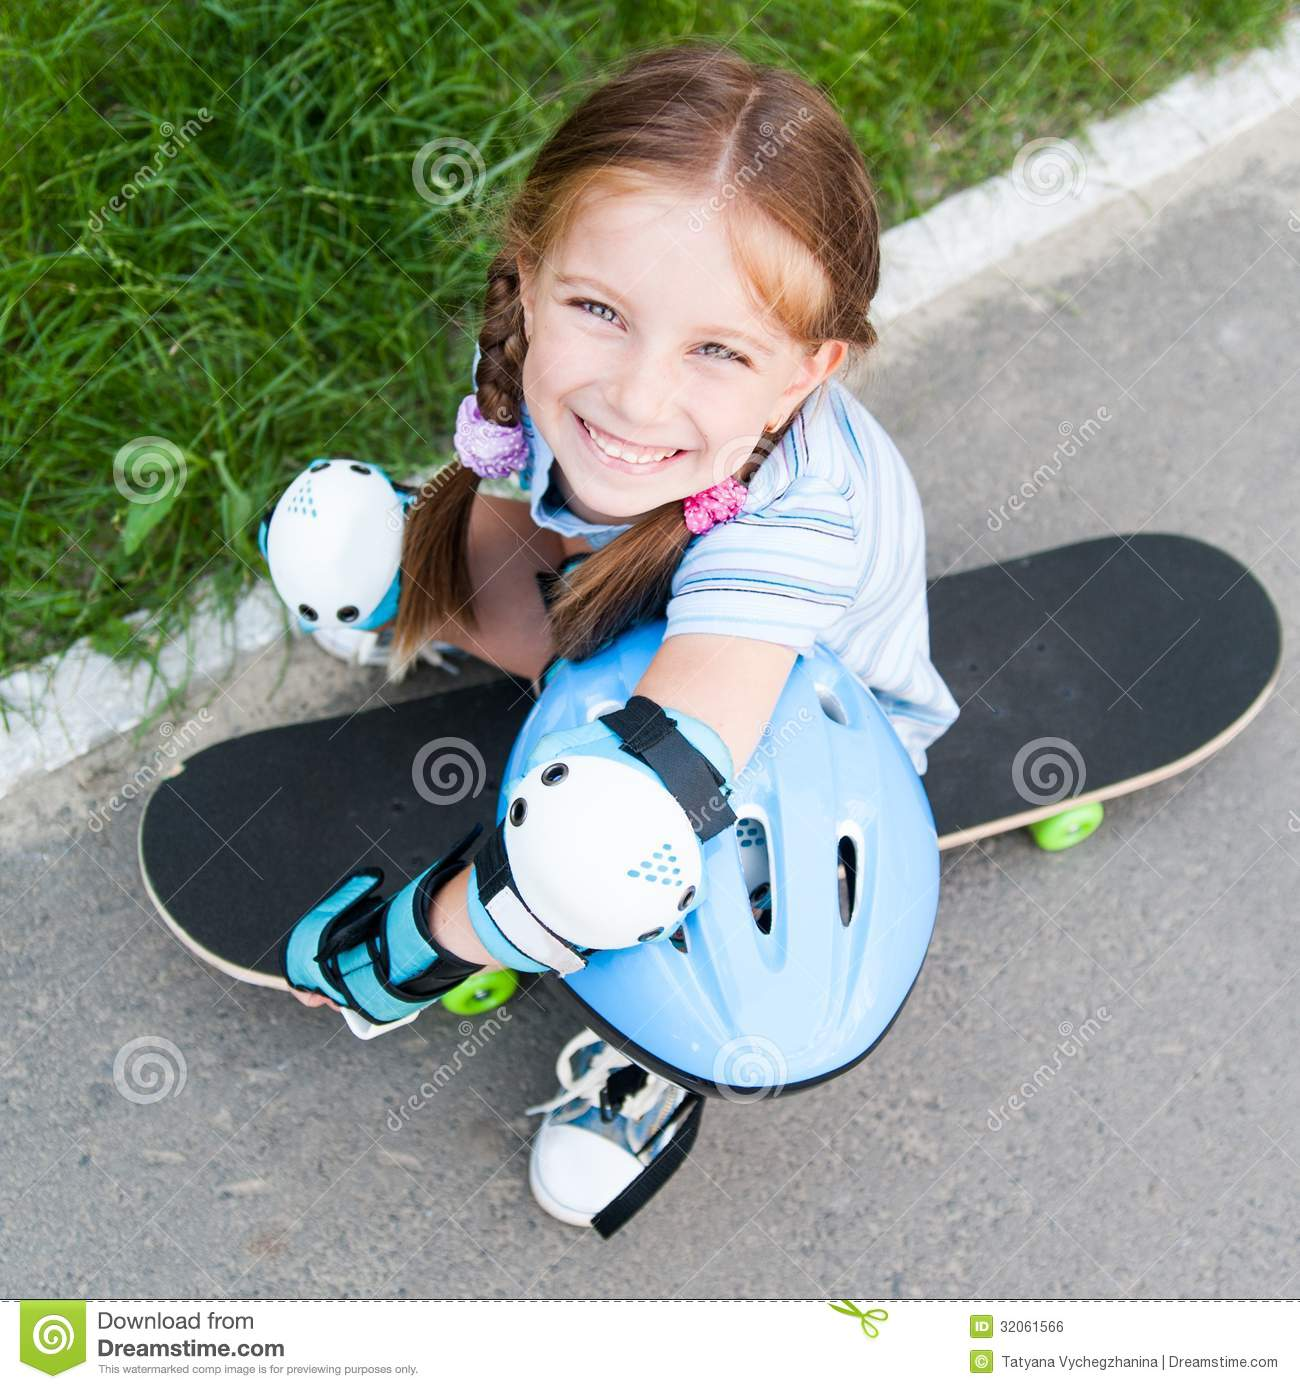 Amusing cute girl on skateboard are